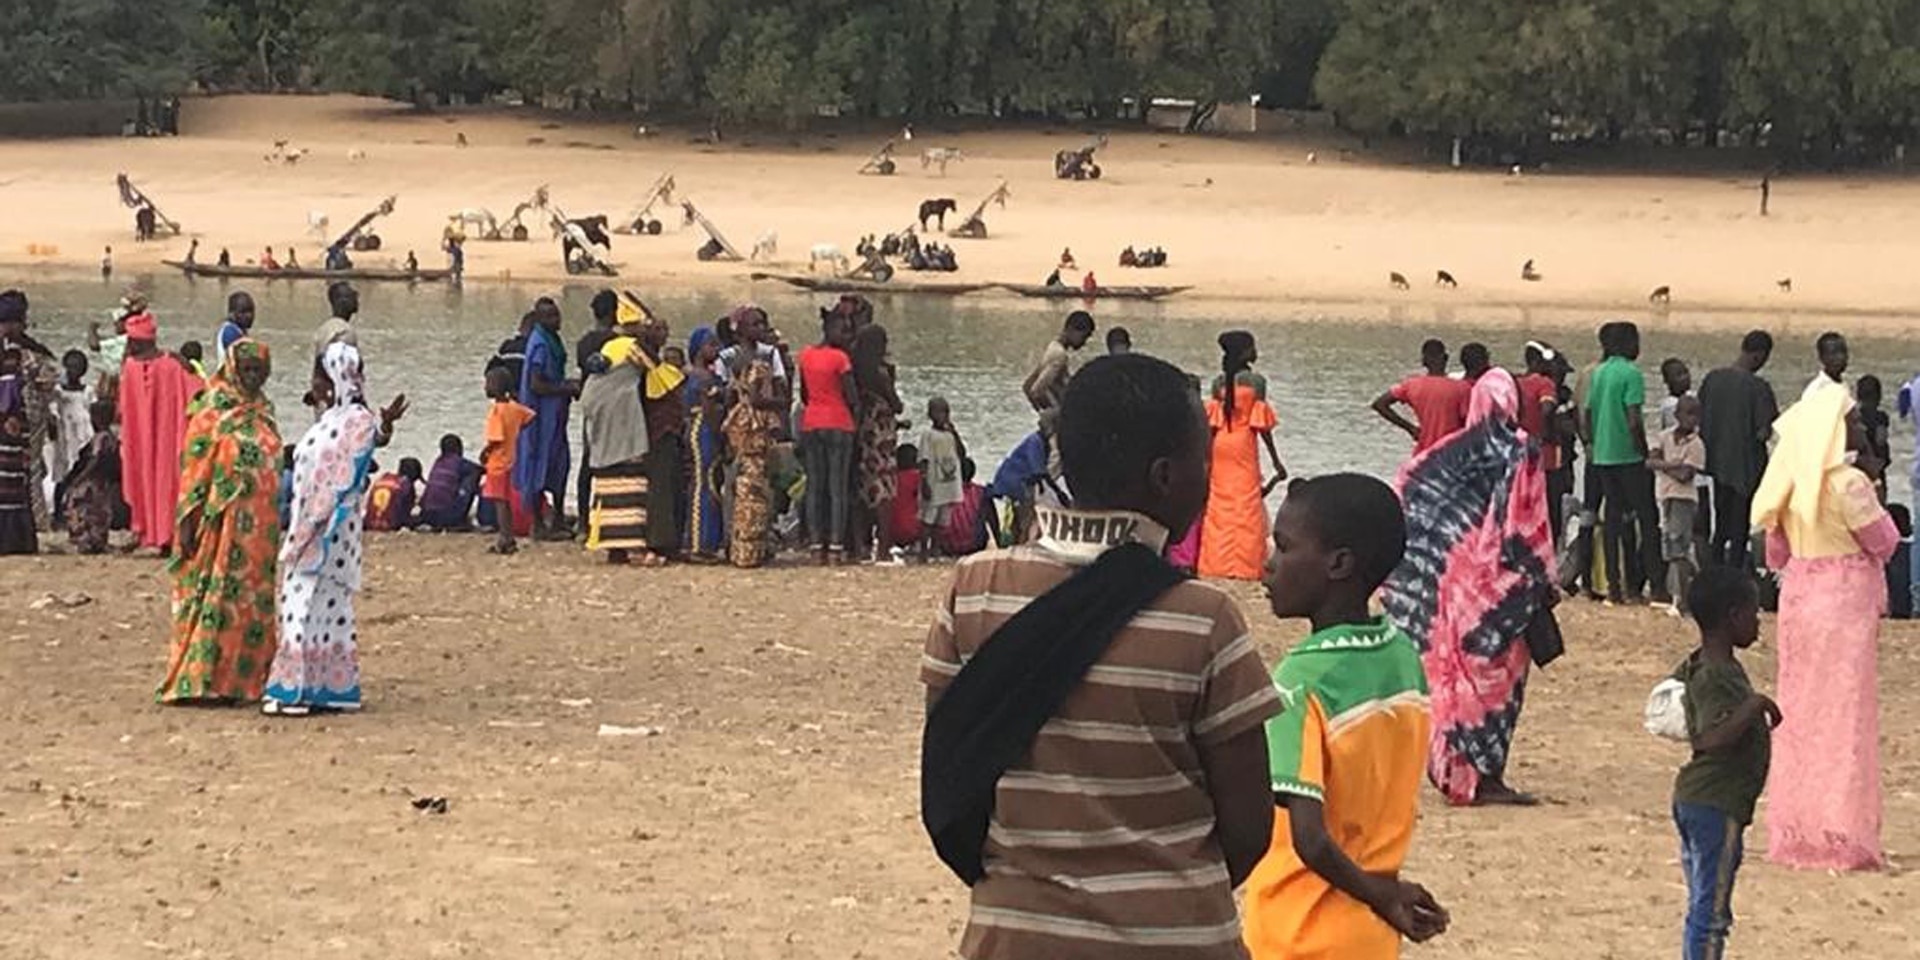 People wearing brightly coloured clothing standing on the bank of the Senegal River which separates Senegal and Mauritania.